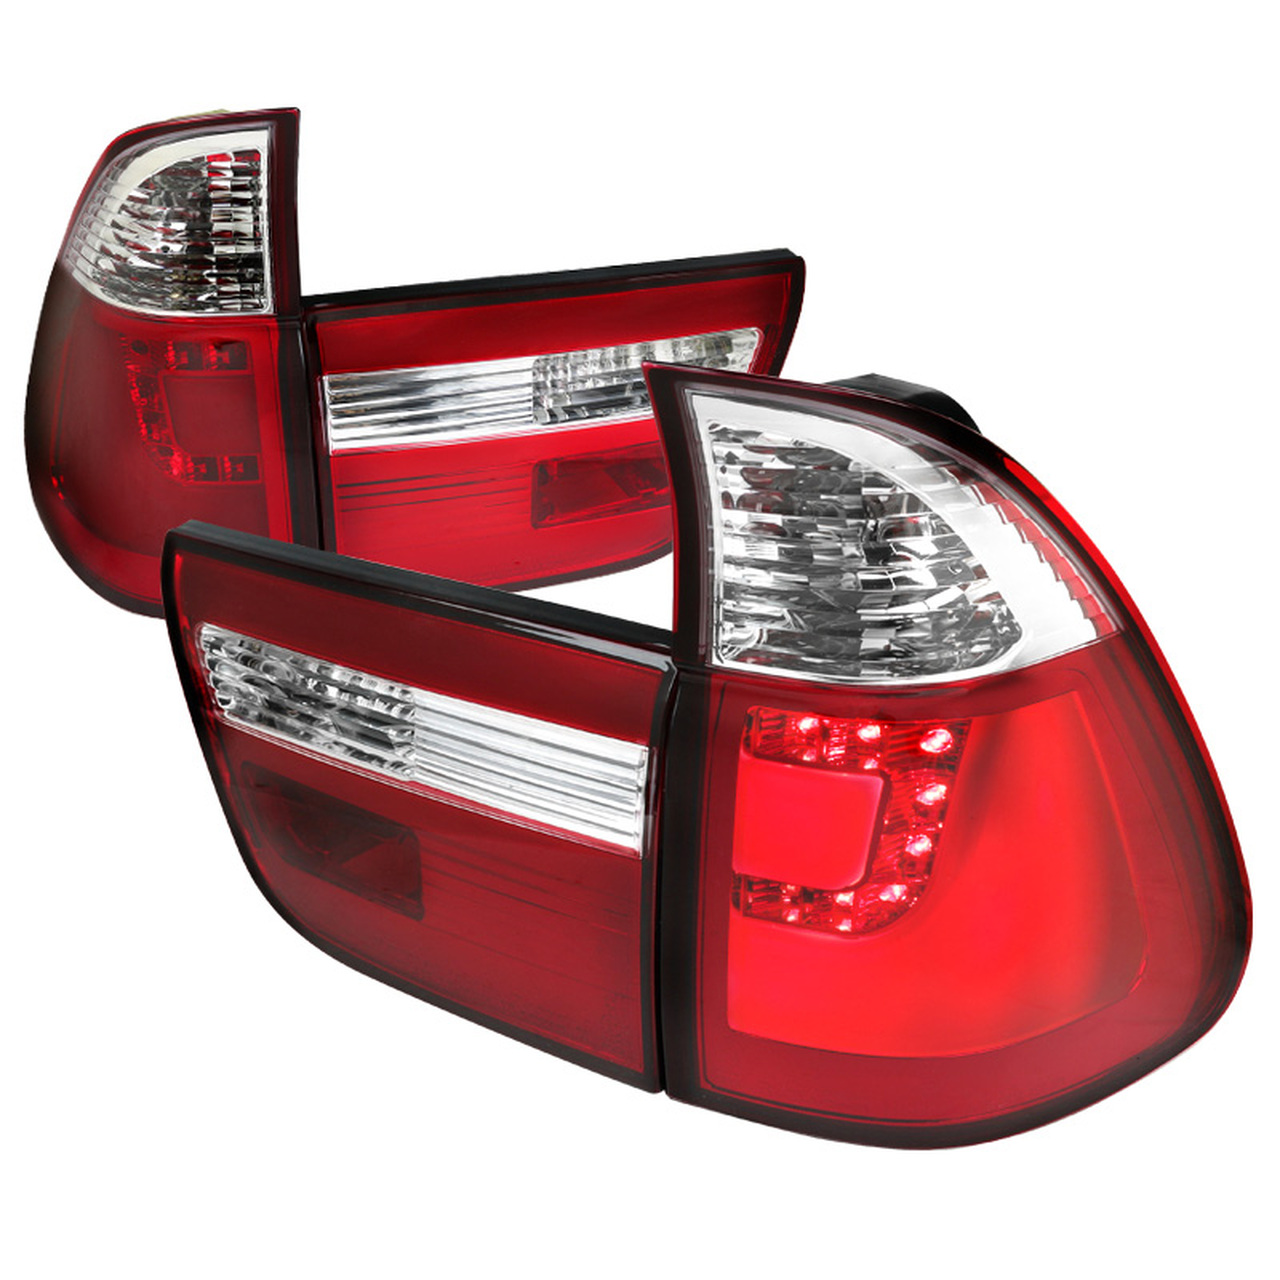 Spec-D Tuning Red LED Tail Lights - Spec-D Tuning LT-X500RLED-TM